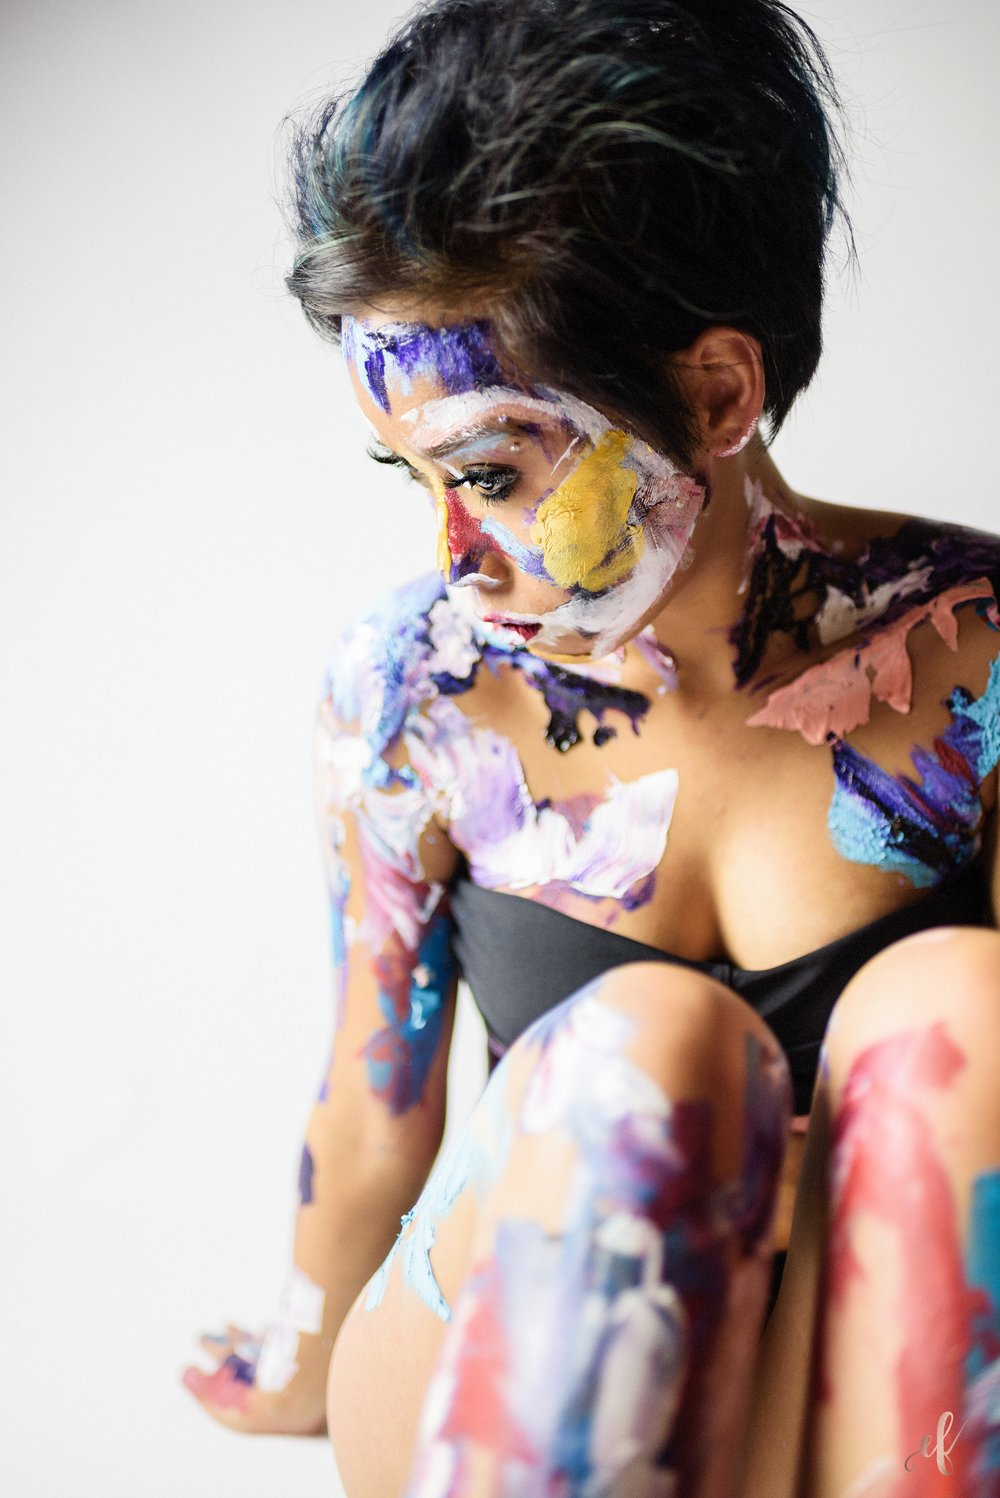 San Diego Portrait Photography | Paint | Body Paint | Art | Destiny Macias